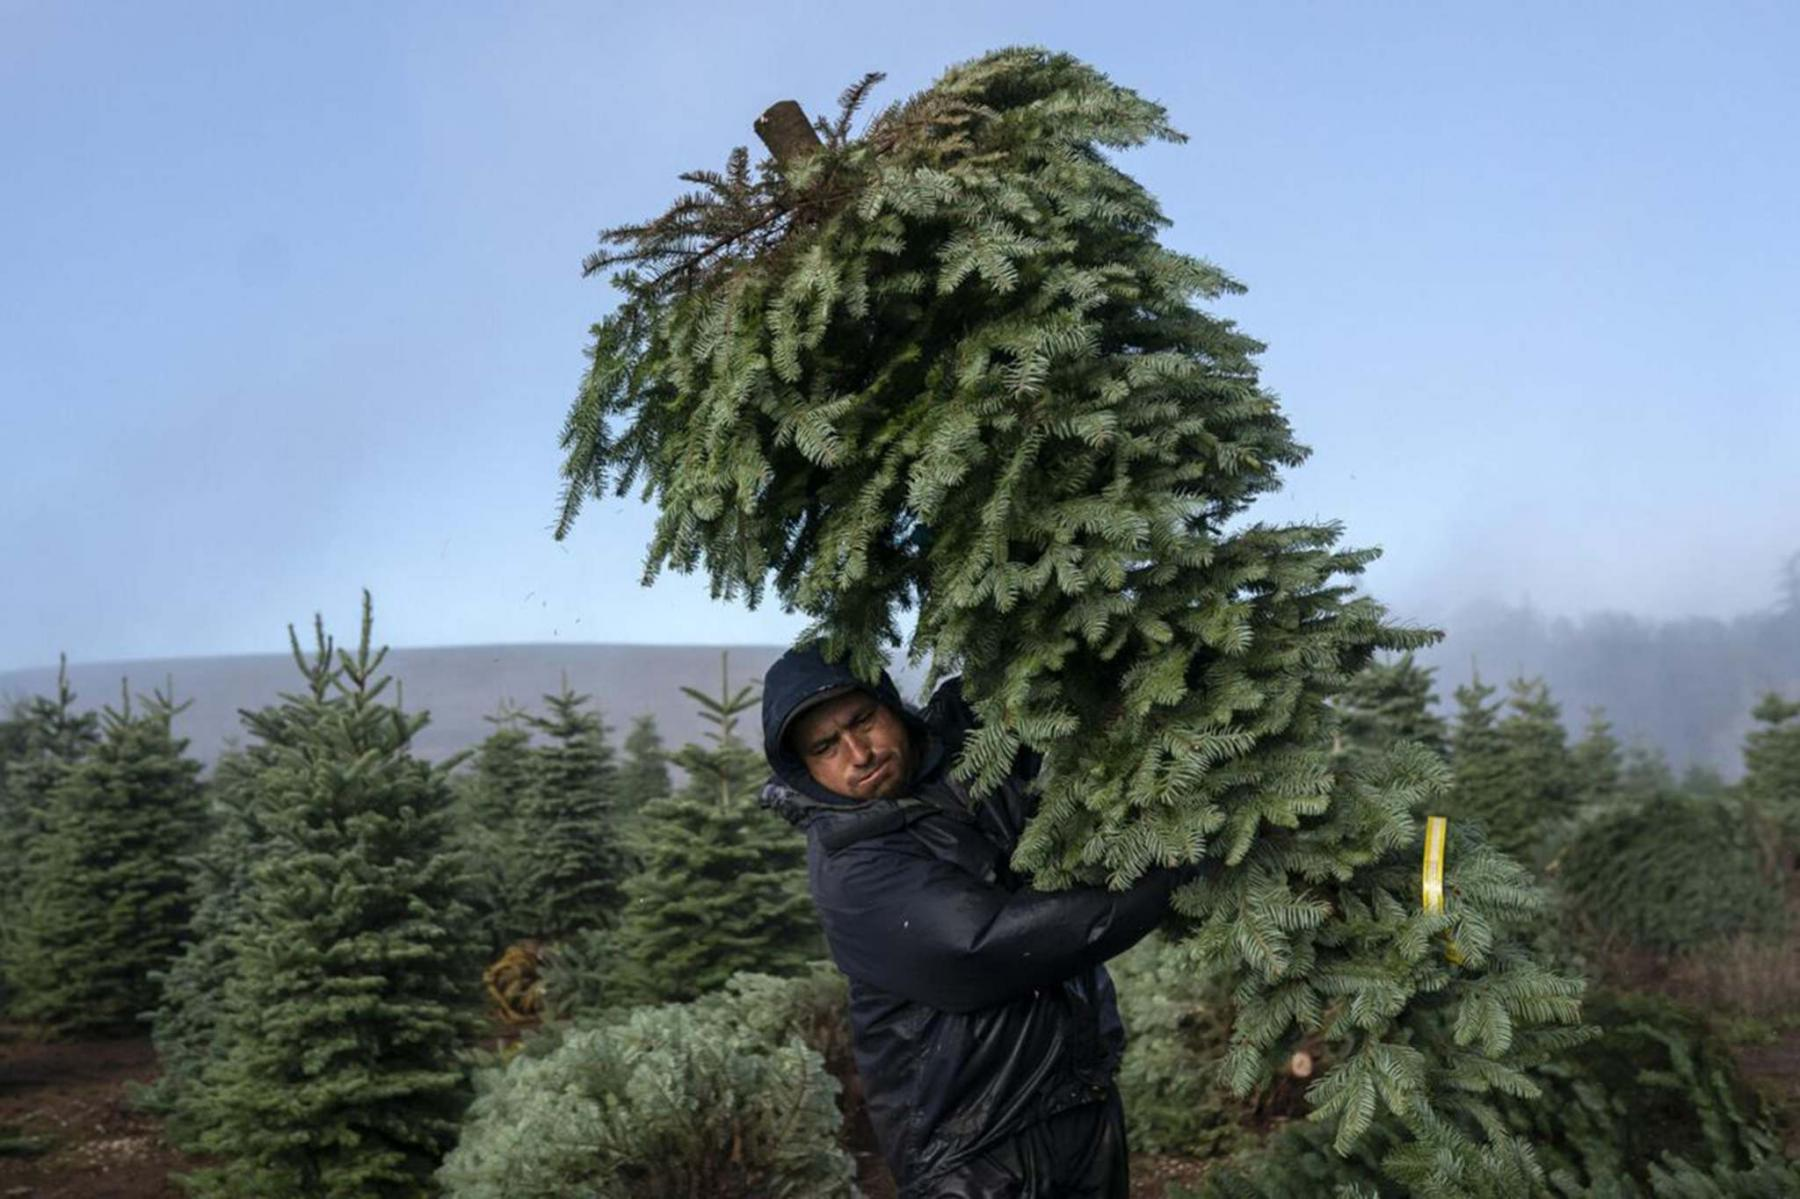 <p>Nathan Howard / Getty Images</p><p>A worker carries cut Christmas trees last month at Noble Mountain Tree Farm in Salem, Ore.</p>